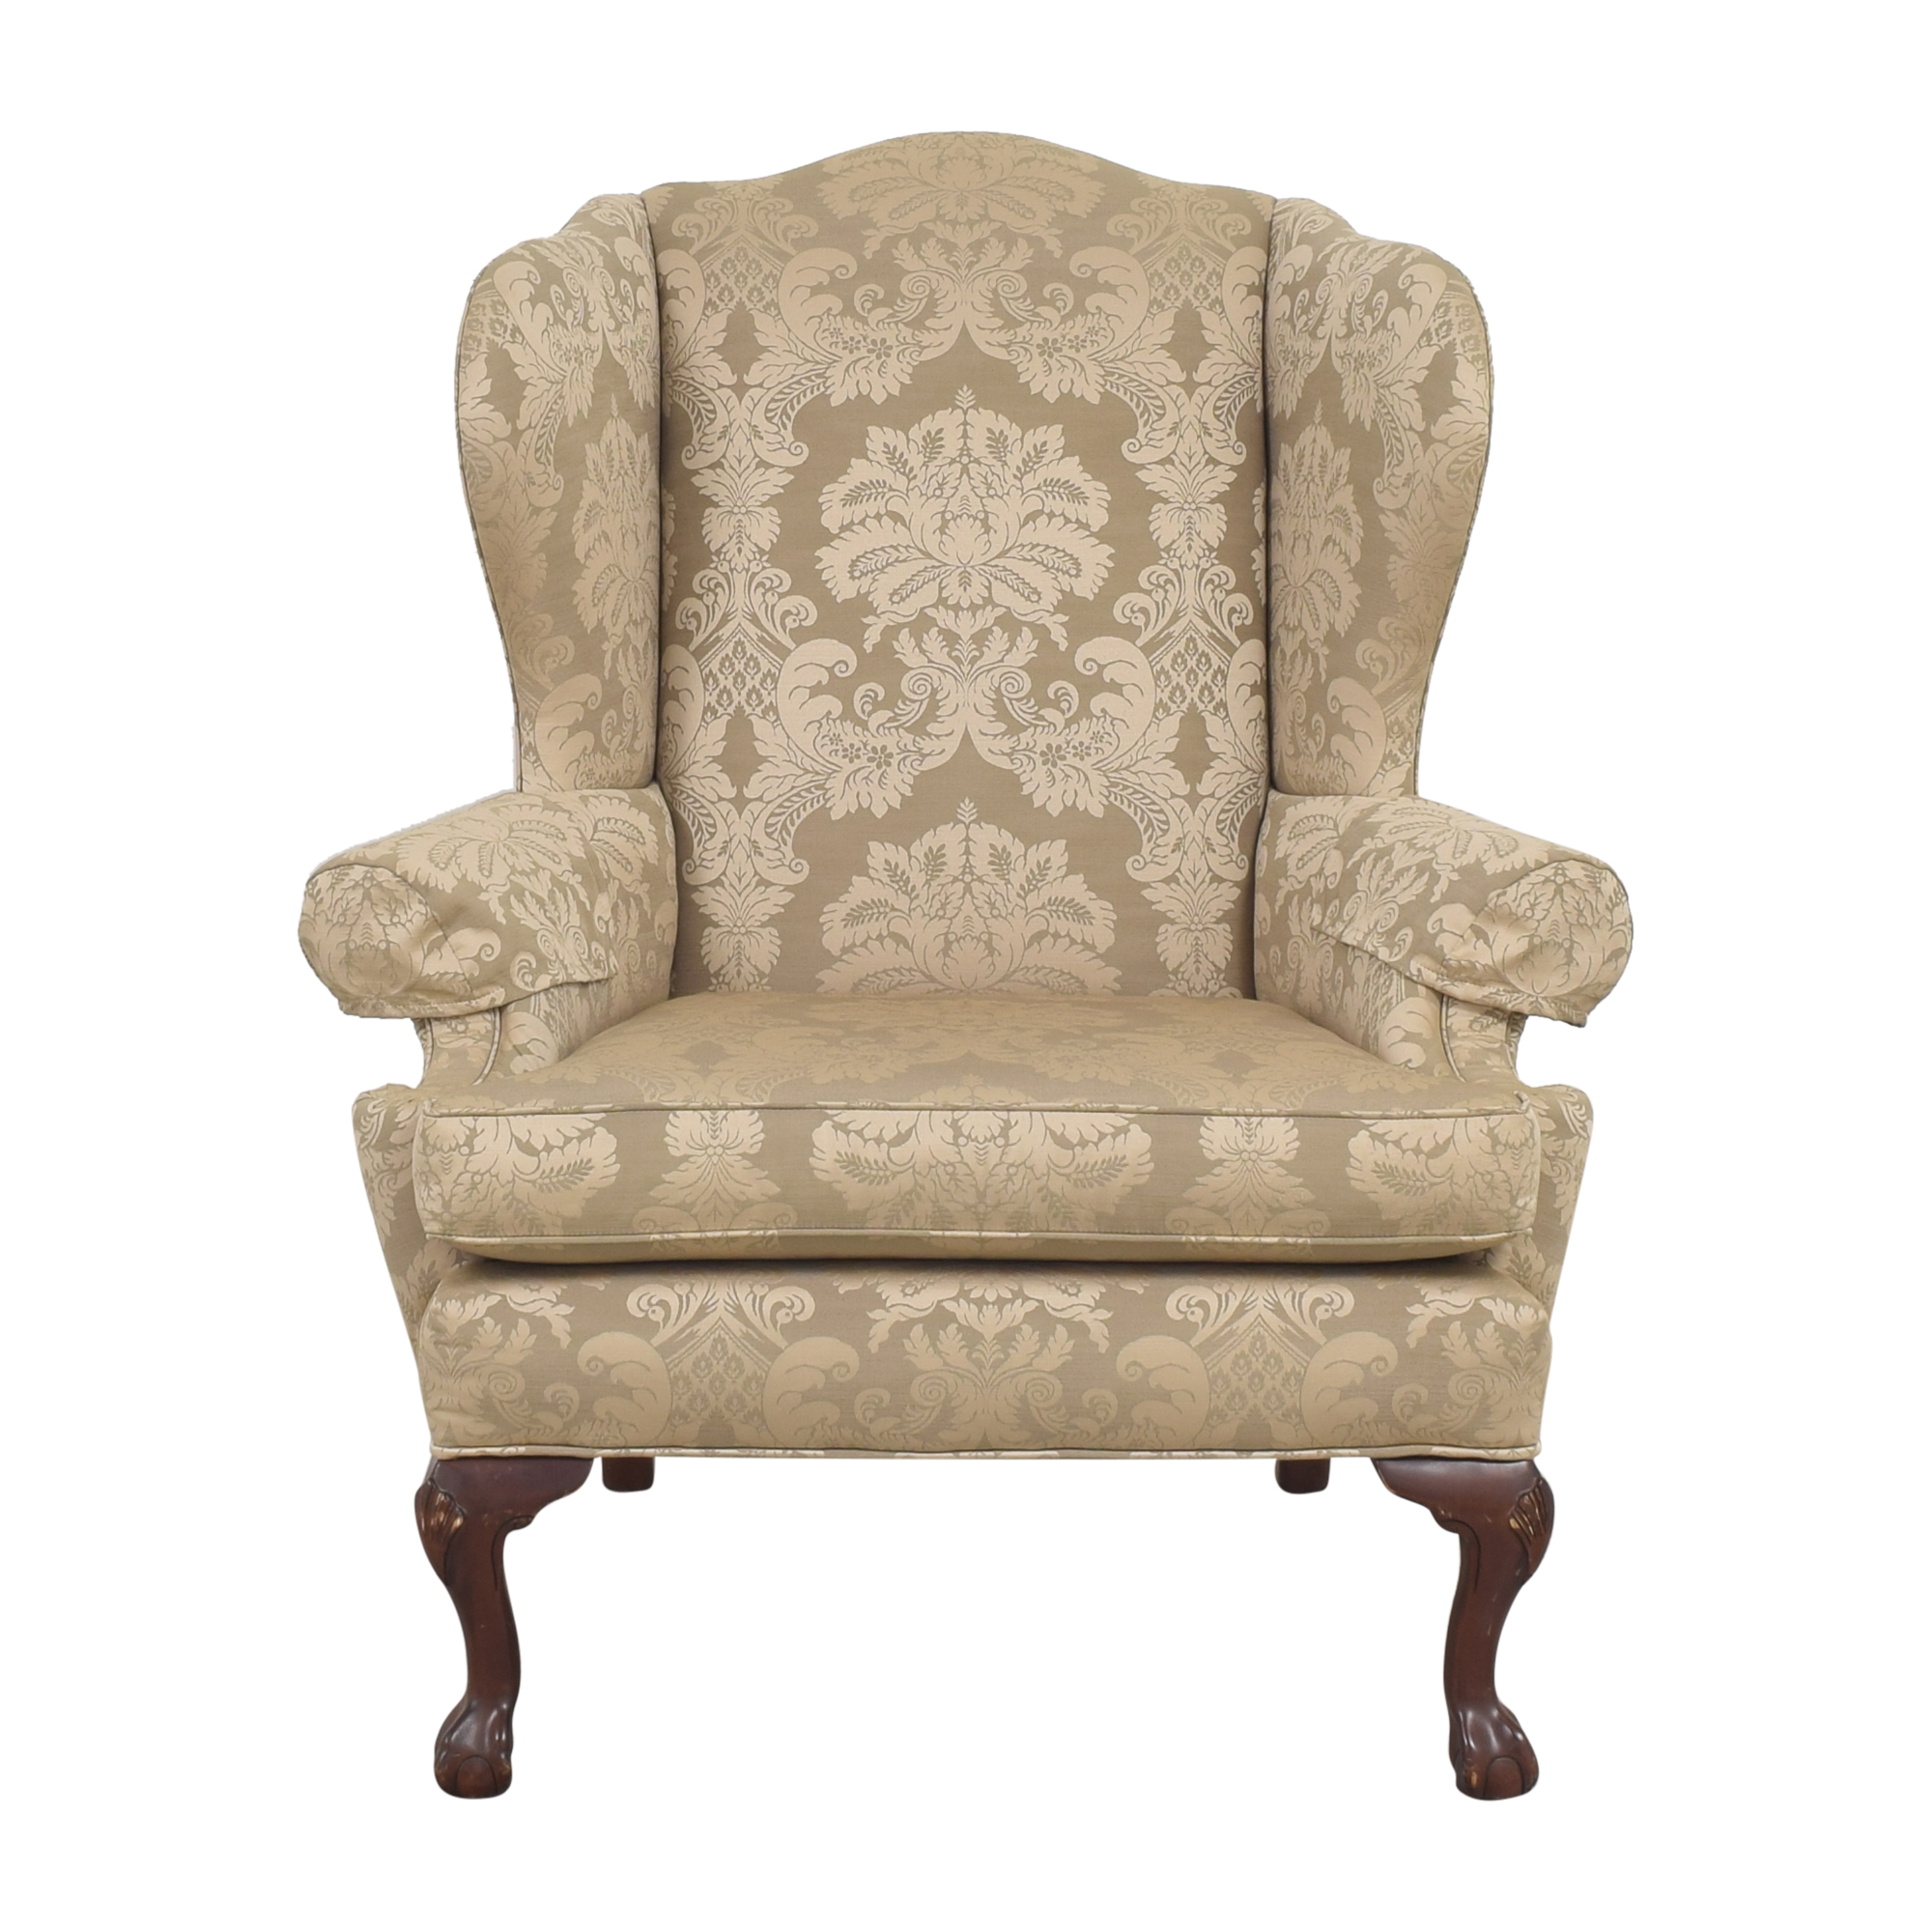 Ethan Allen Wing Accent Chair / Accent Chairs